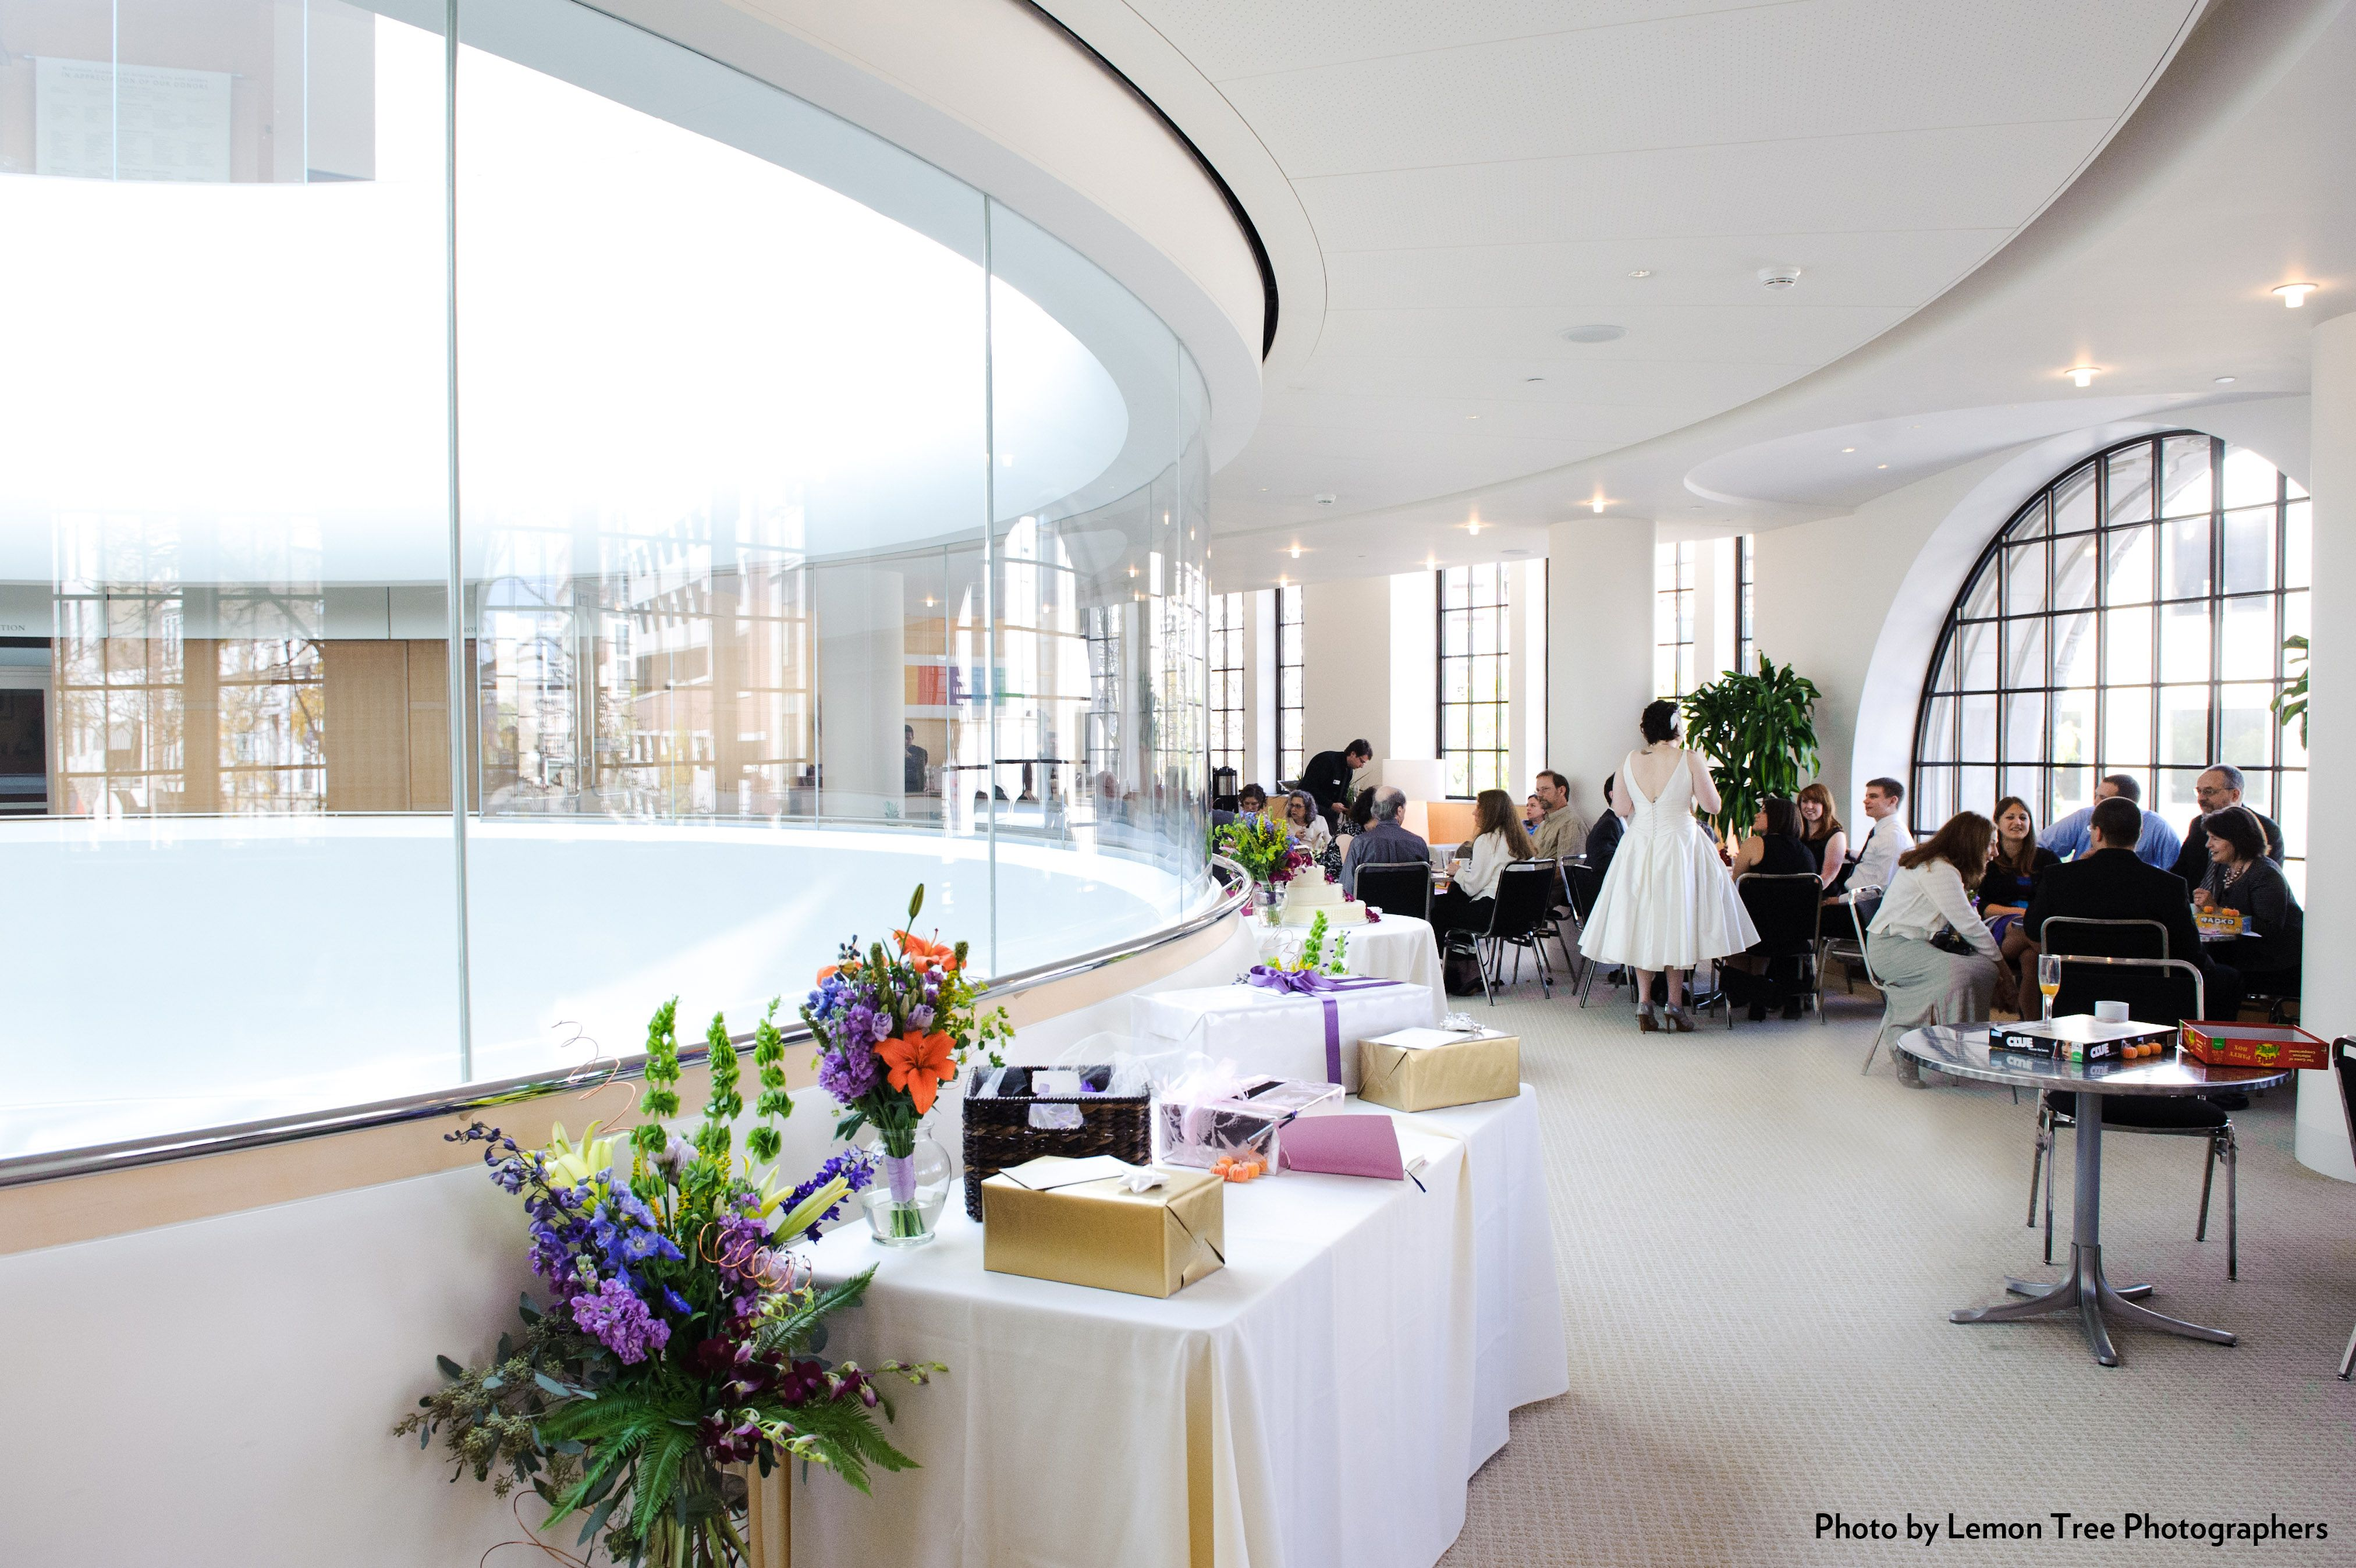 Promenade Lounge Wedding Reception At The Overture Center For The